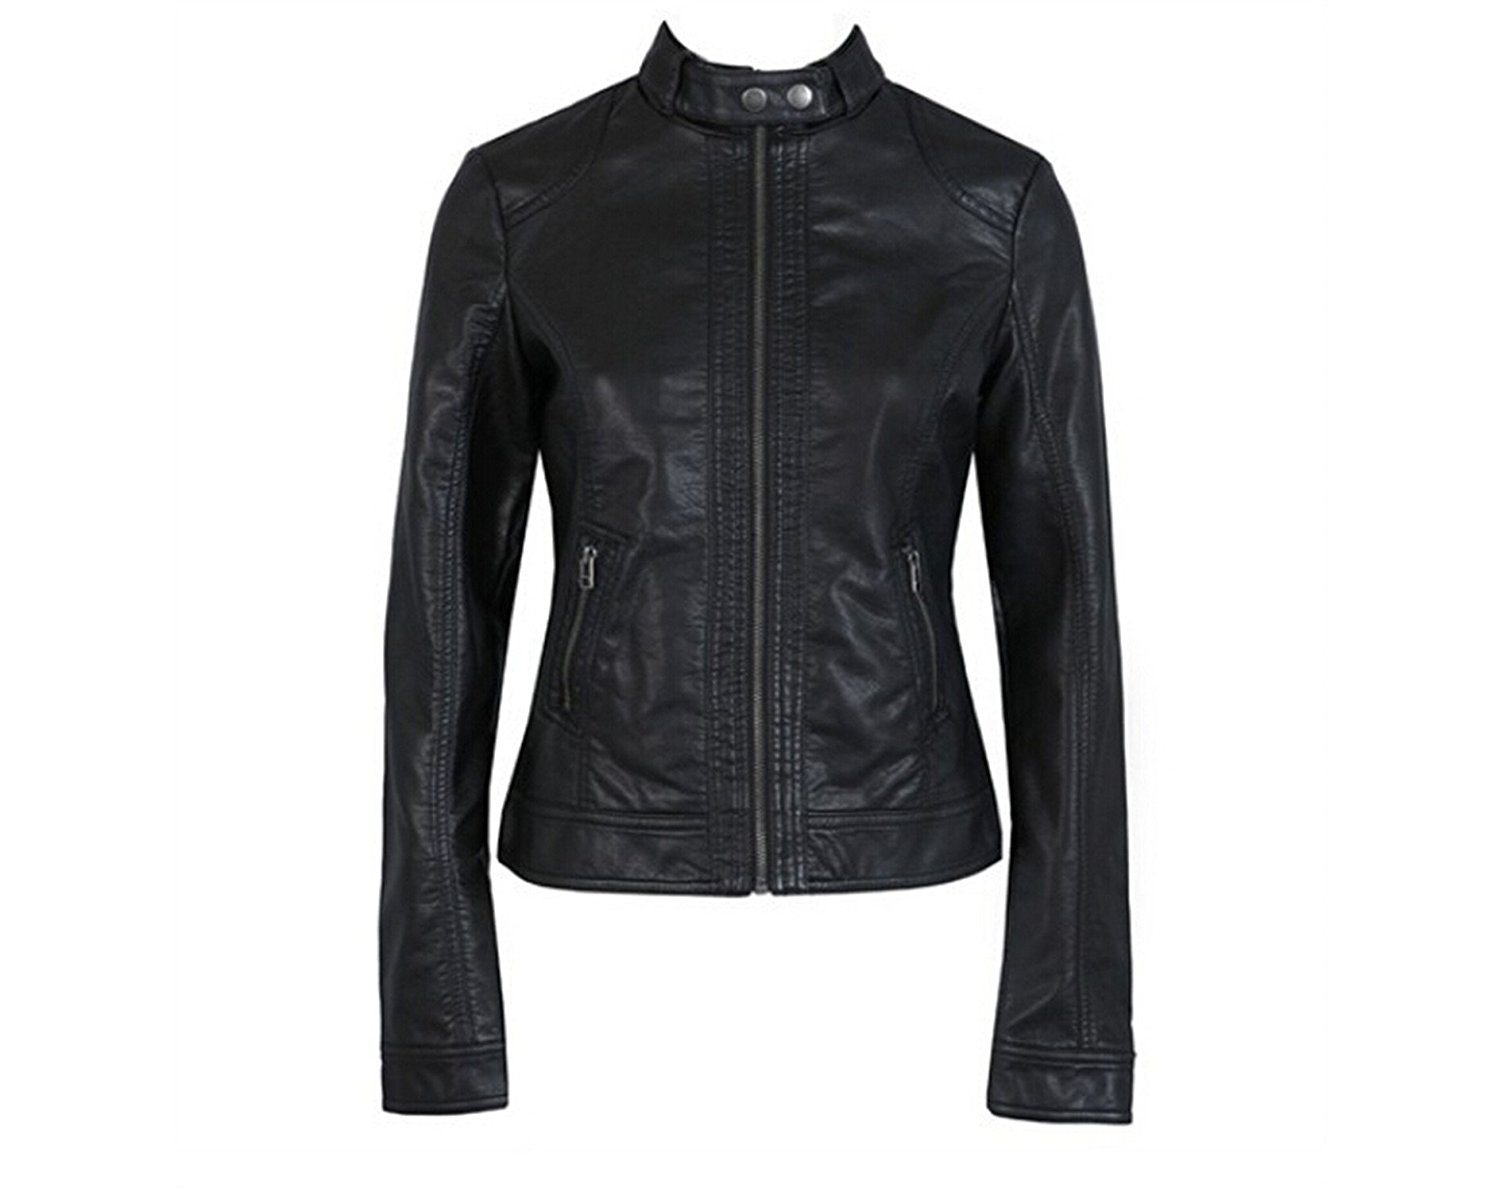 Jimmetfrend Women's Jacket Fashion Leather Pimkie Cleaning Single PU Leather Motorcycle Jacket